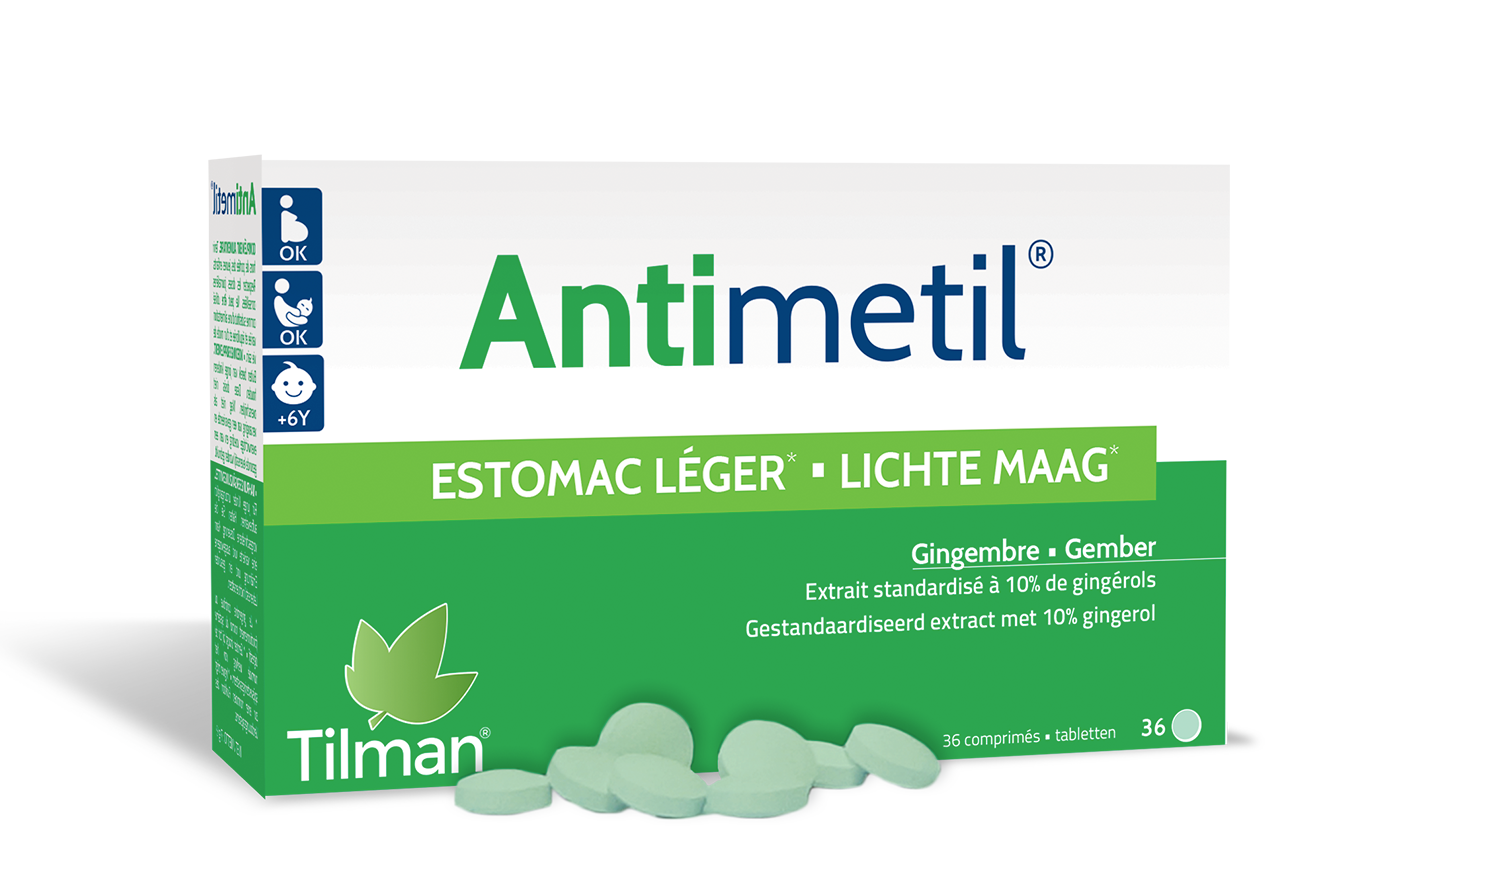 antimetil-etui-36comp_fr-nl